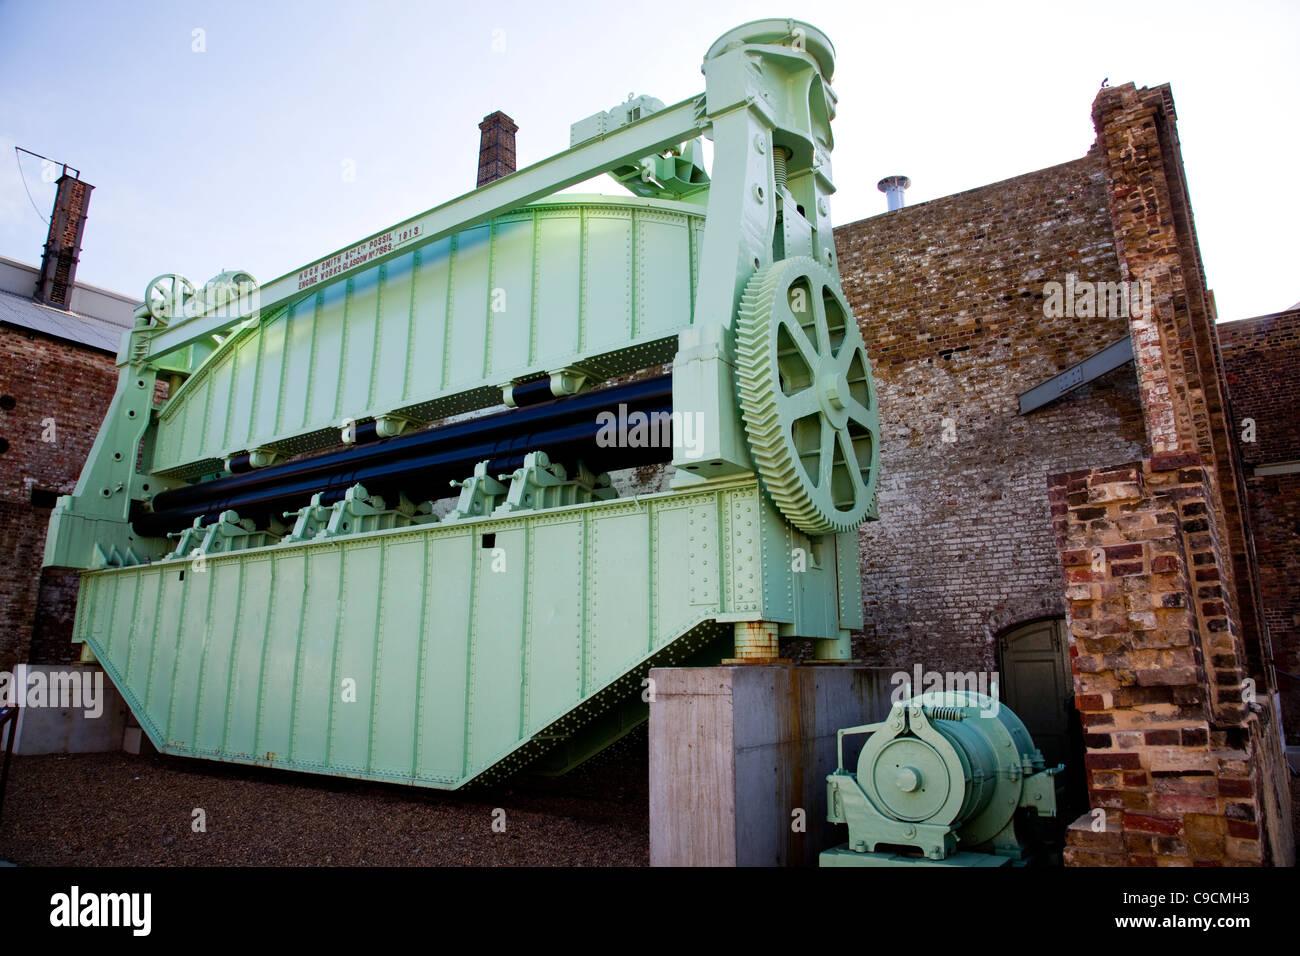 Gigantic plate bending roller at The Historic Dockyard Chatham - Stock Image